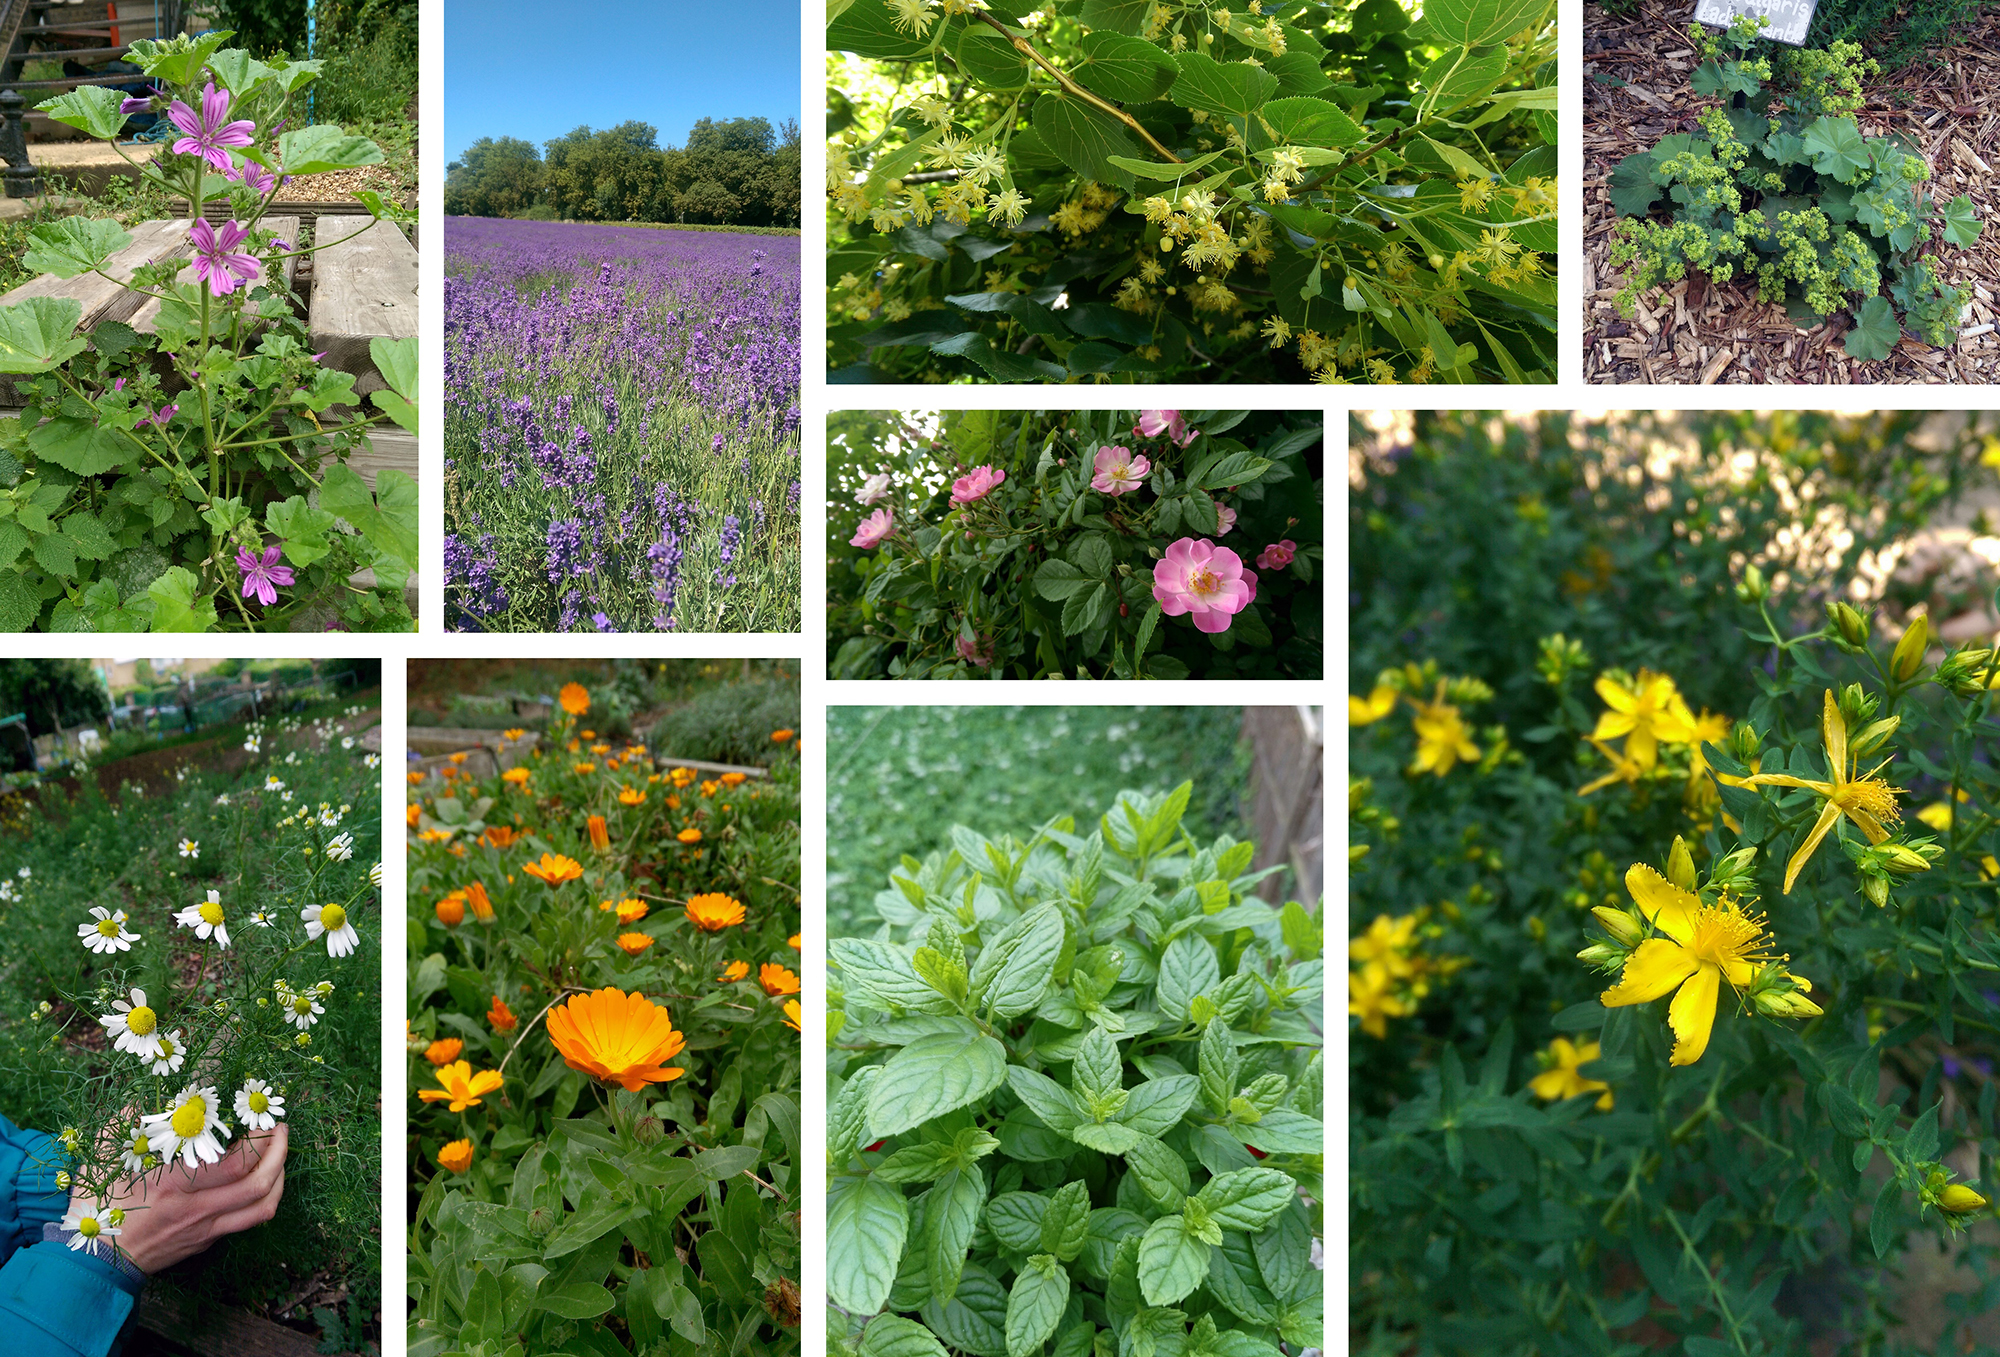 Top row l-r, Mallow, Lavender, Lime flower, Lady's Mantle. Centre, Rose. Bottom row l-r, Chamomile, Pot Marigold,  Mint, St. John's Wort